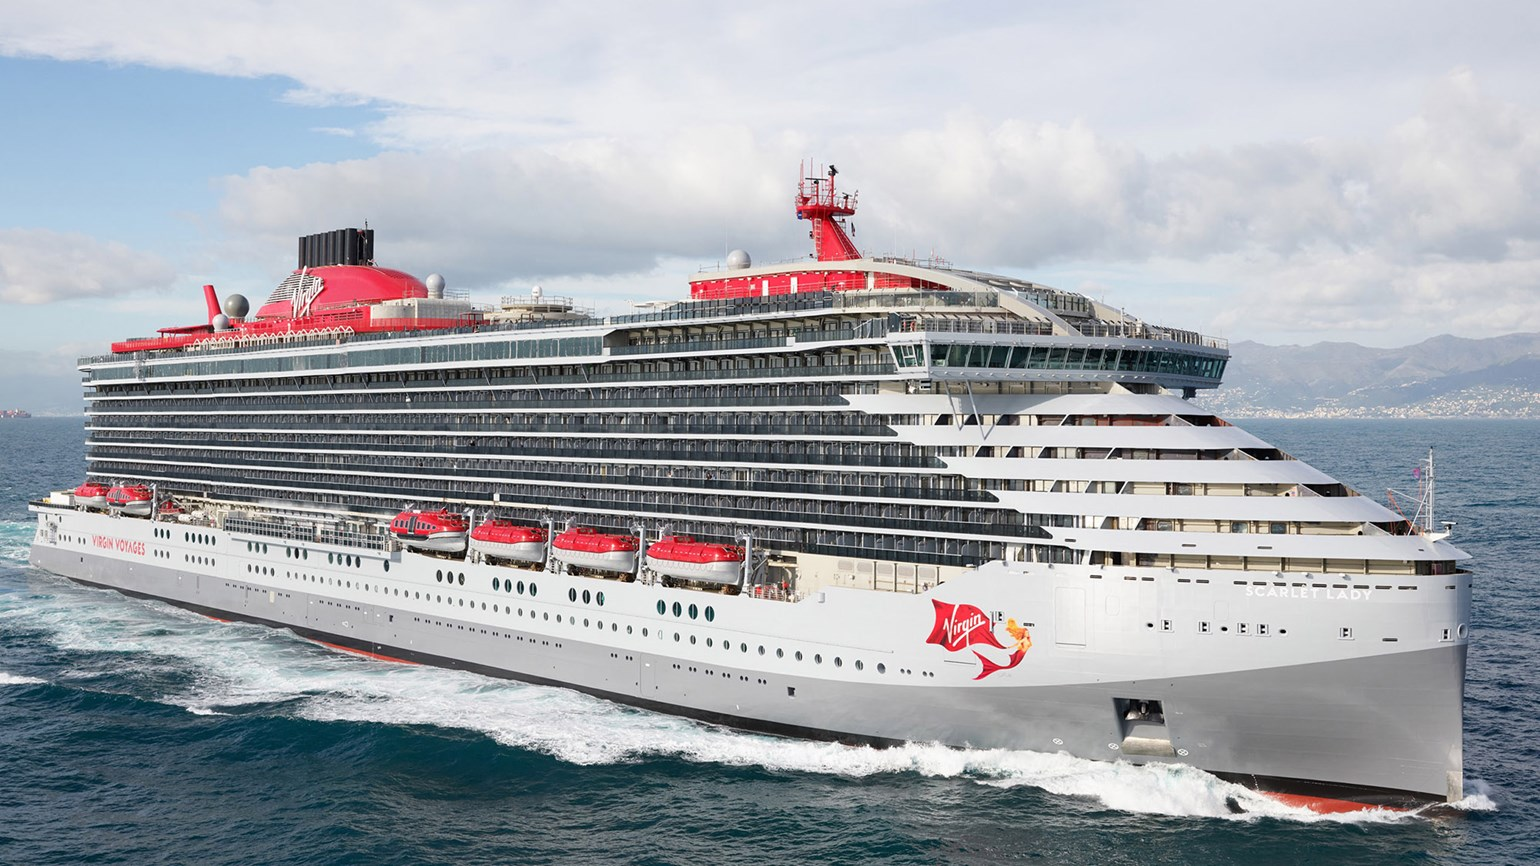 Virgin Voyages increases commission to 16%